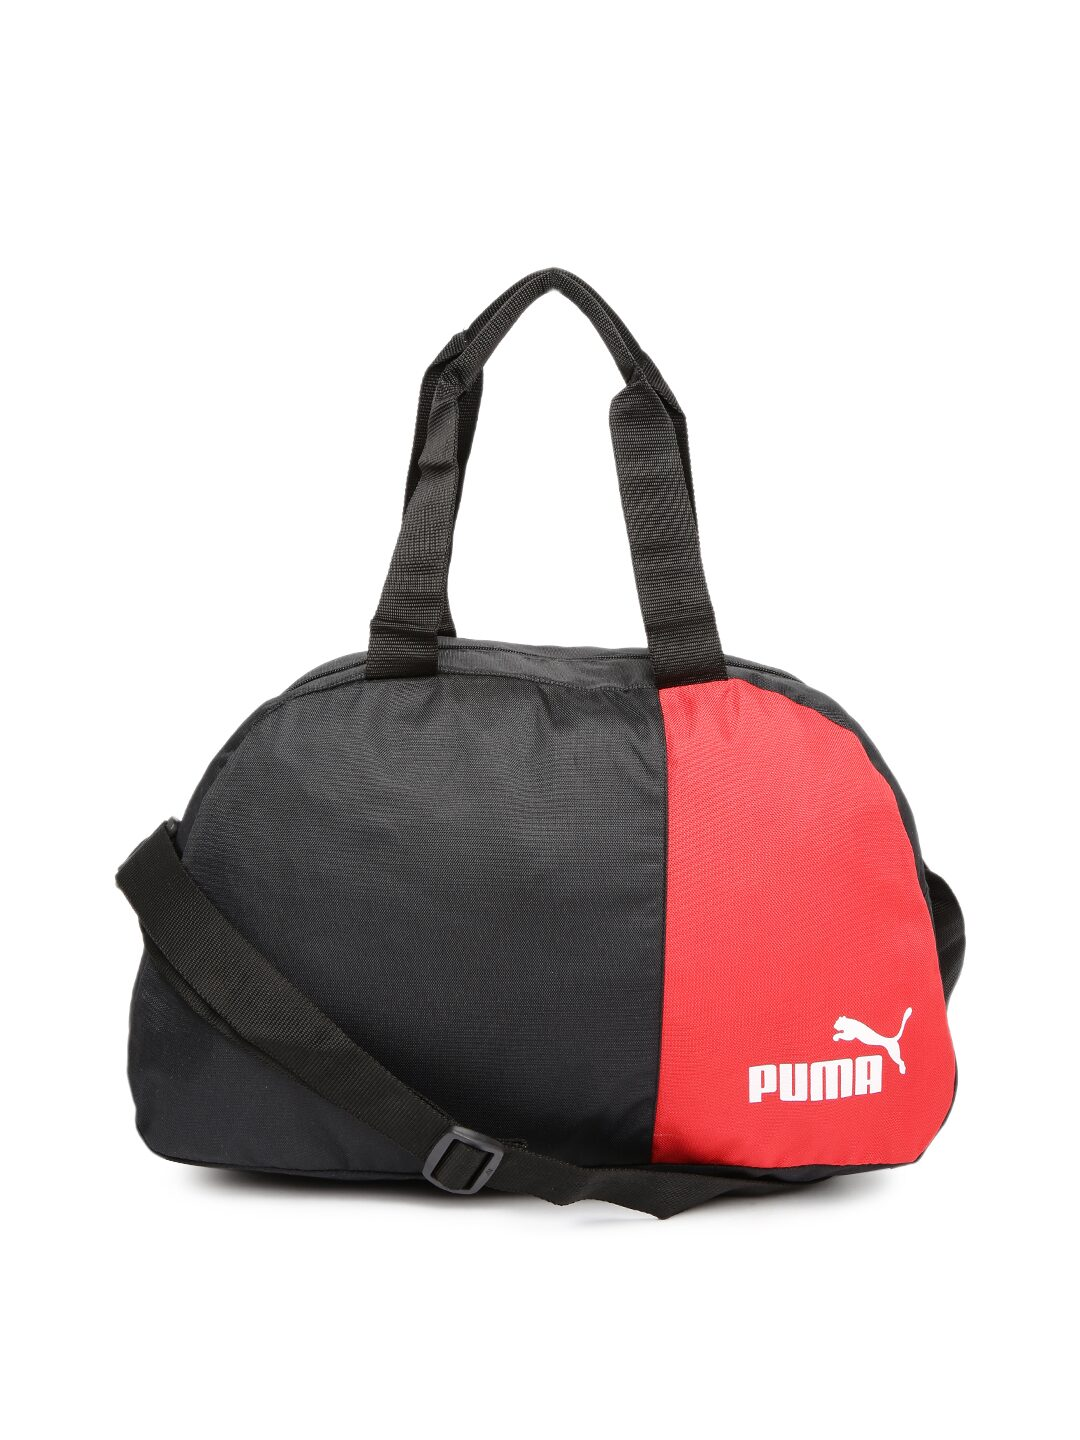 Puma Unisex Black And Red Duffle Bag